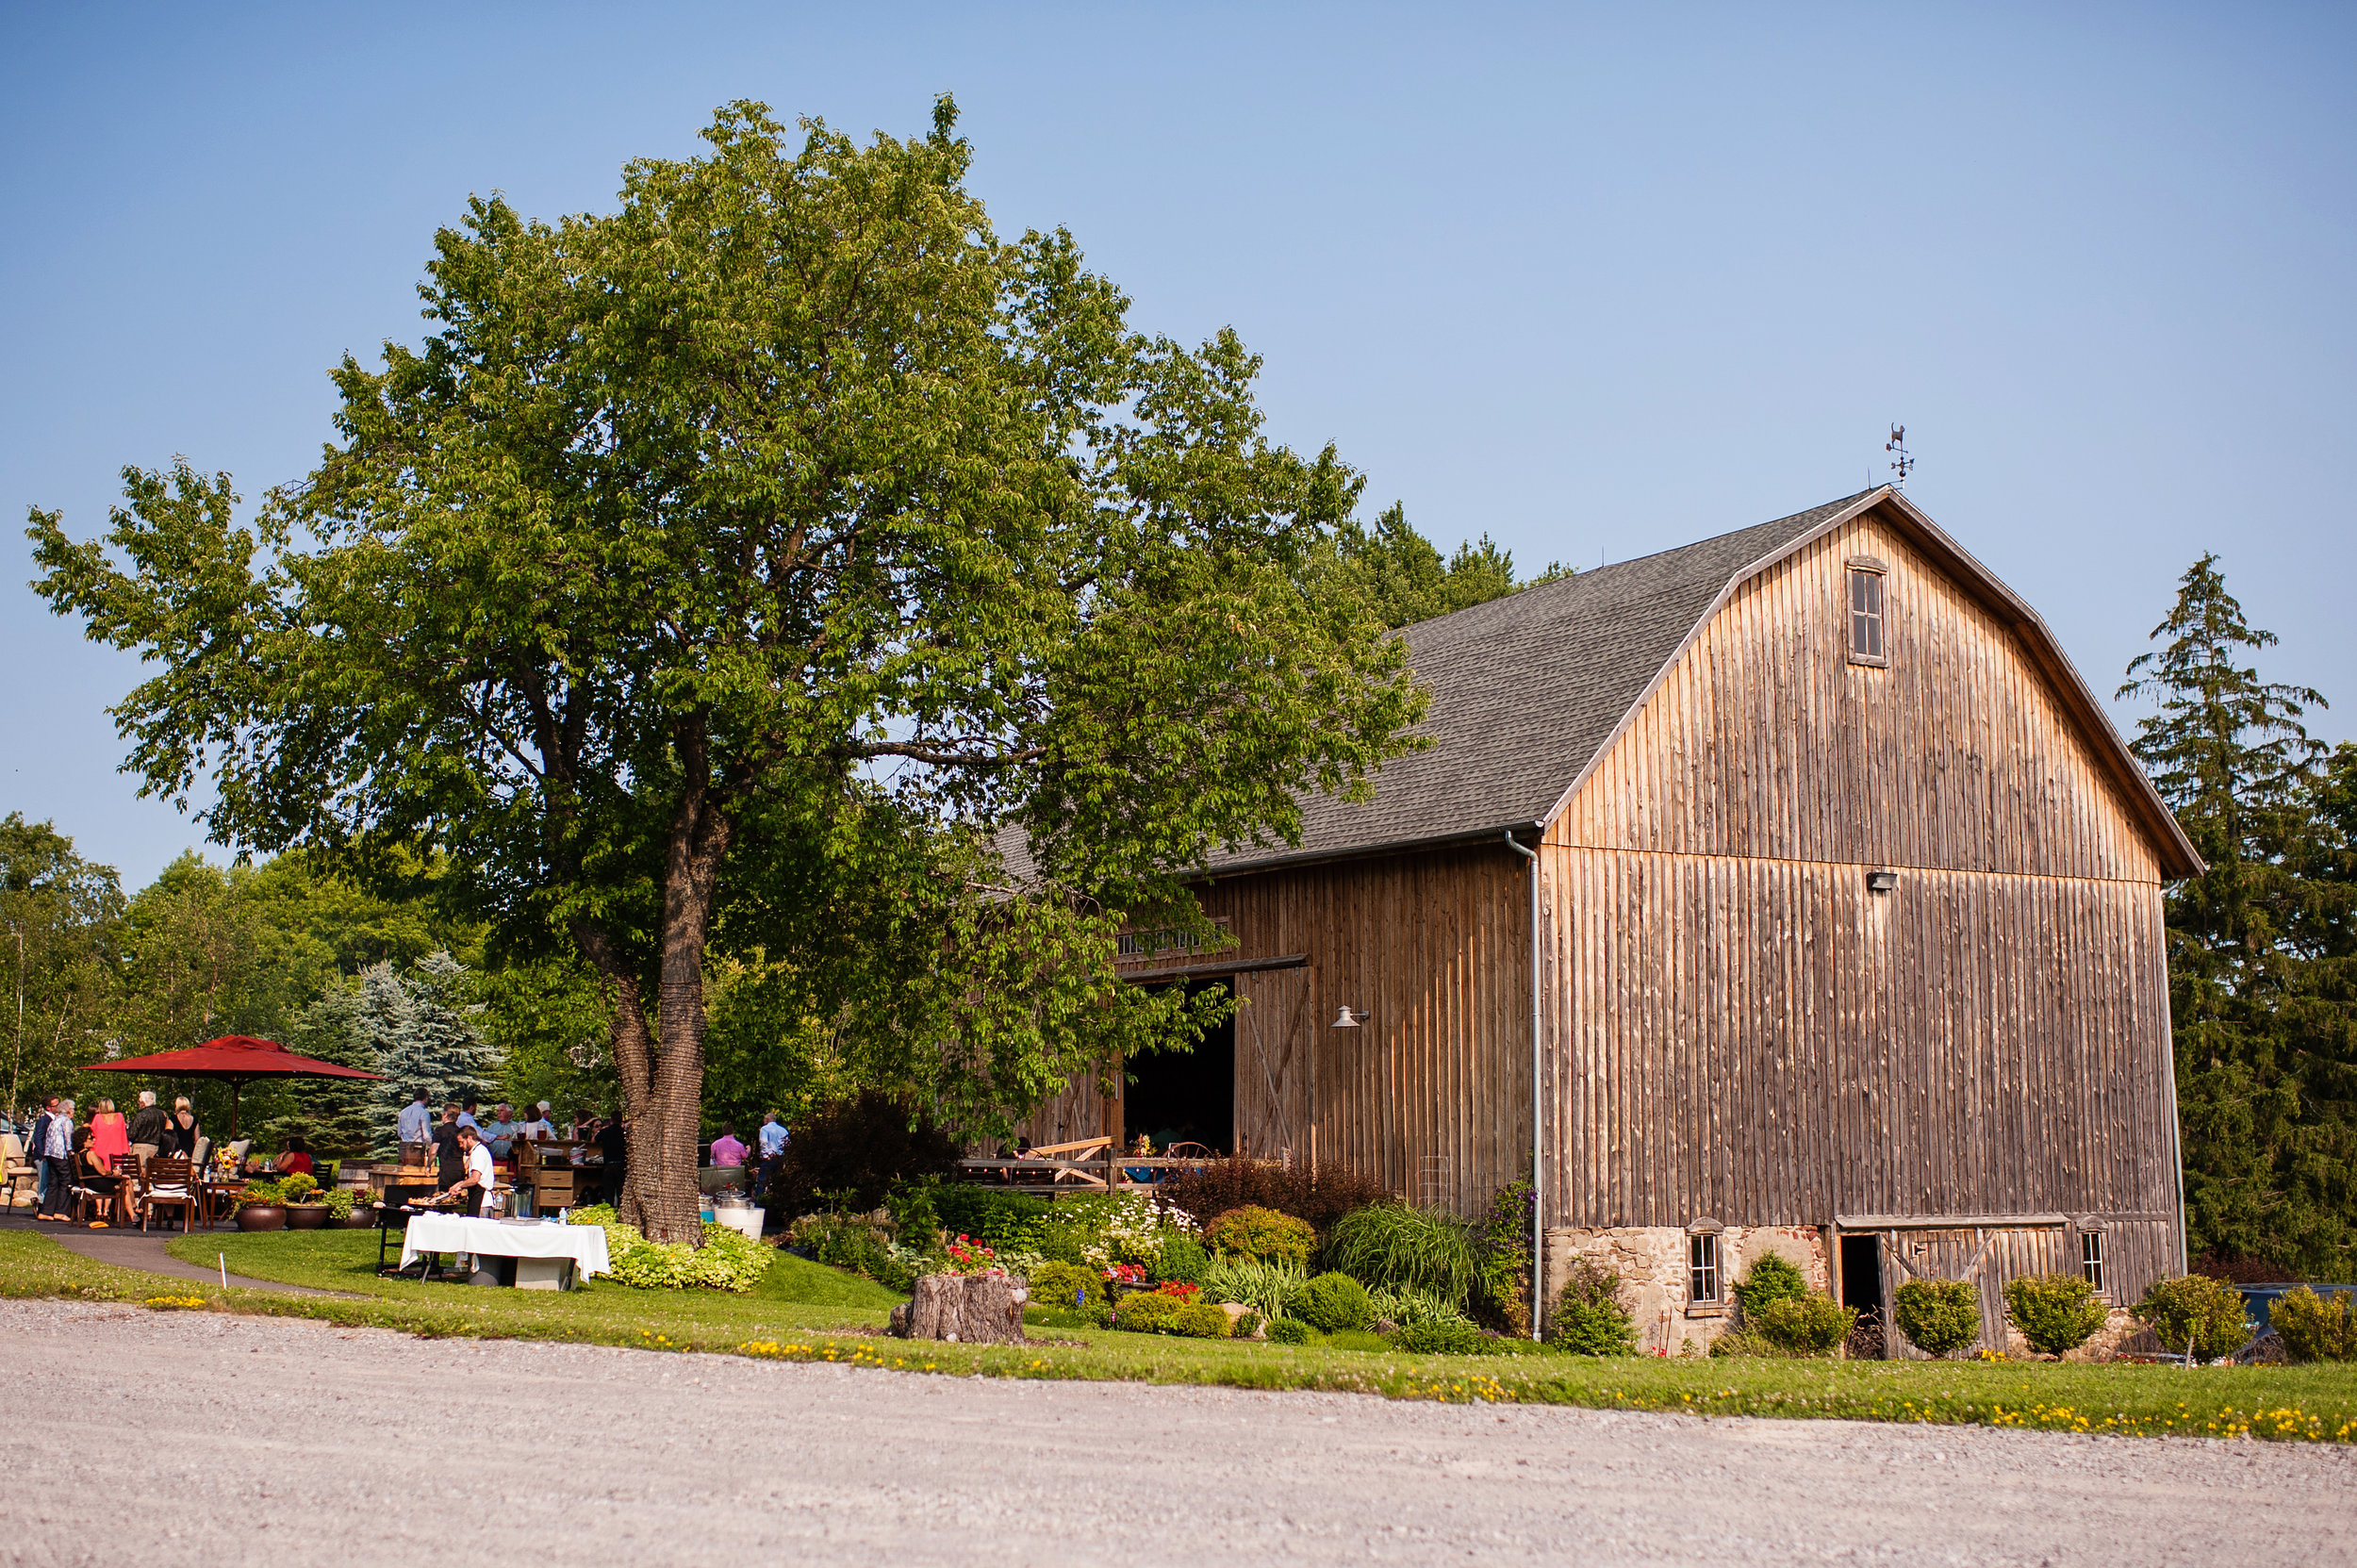 buffalo_wedding_venue_hayloftinthegrove_dawnmgibsonphotography_5.jpg